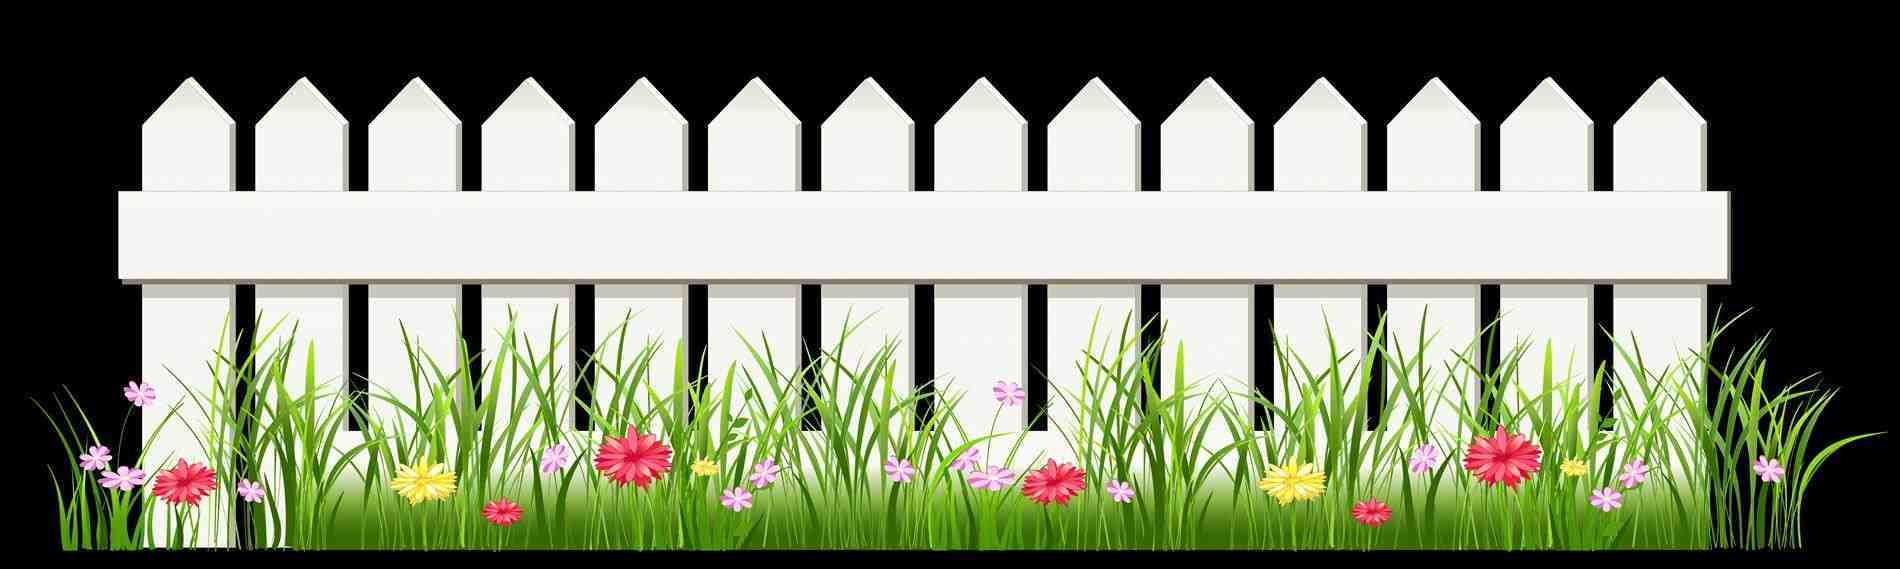 Fence clipart beautiful fence.  clipartlook